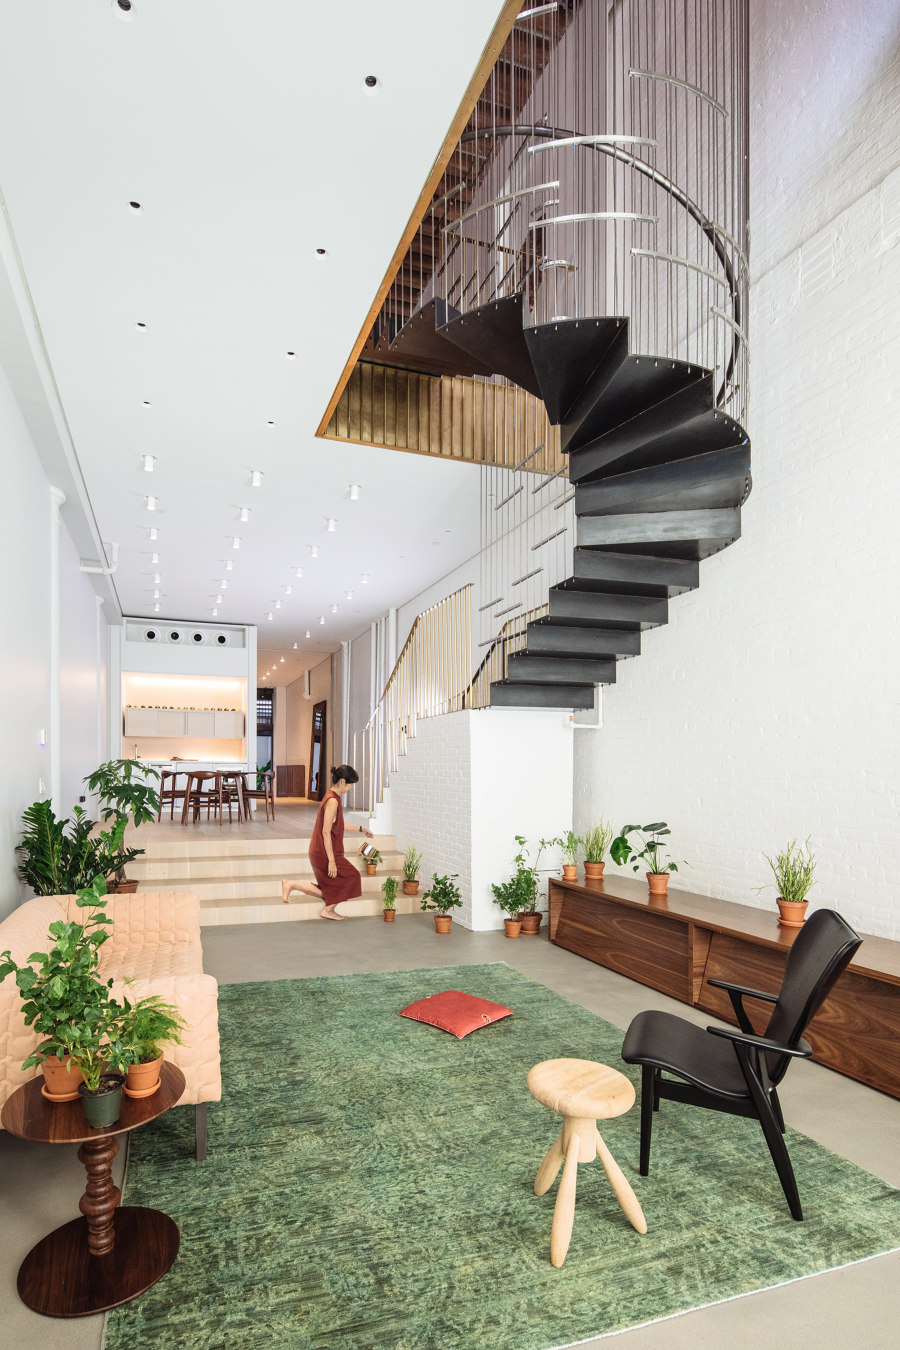 Friends in high places: loft living | News